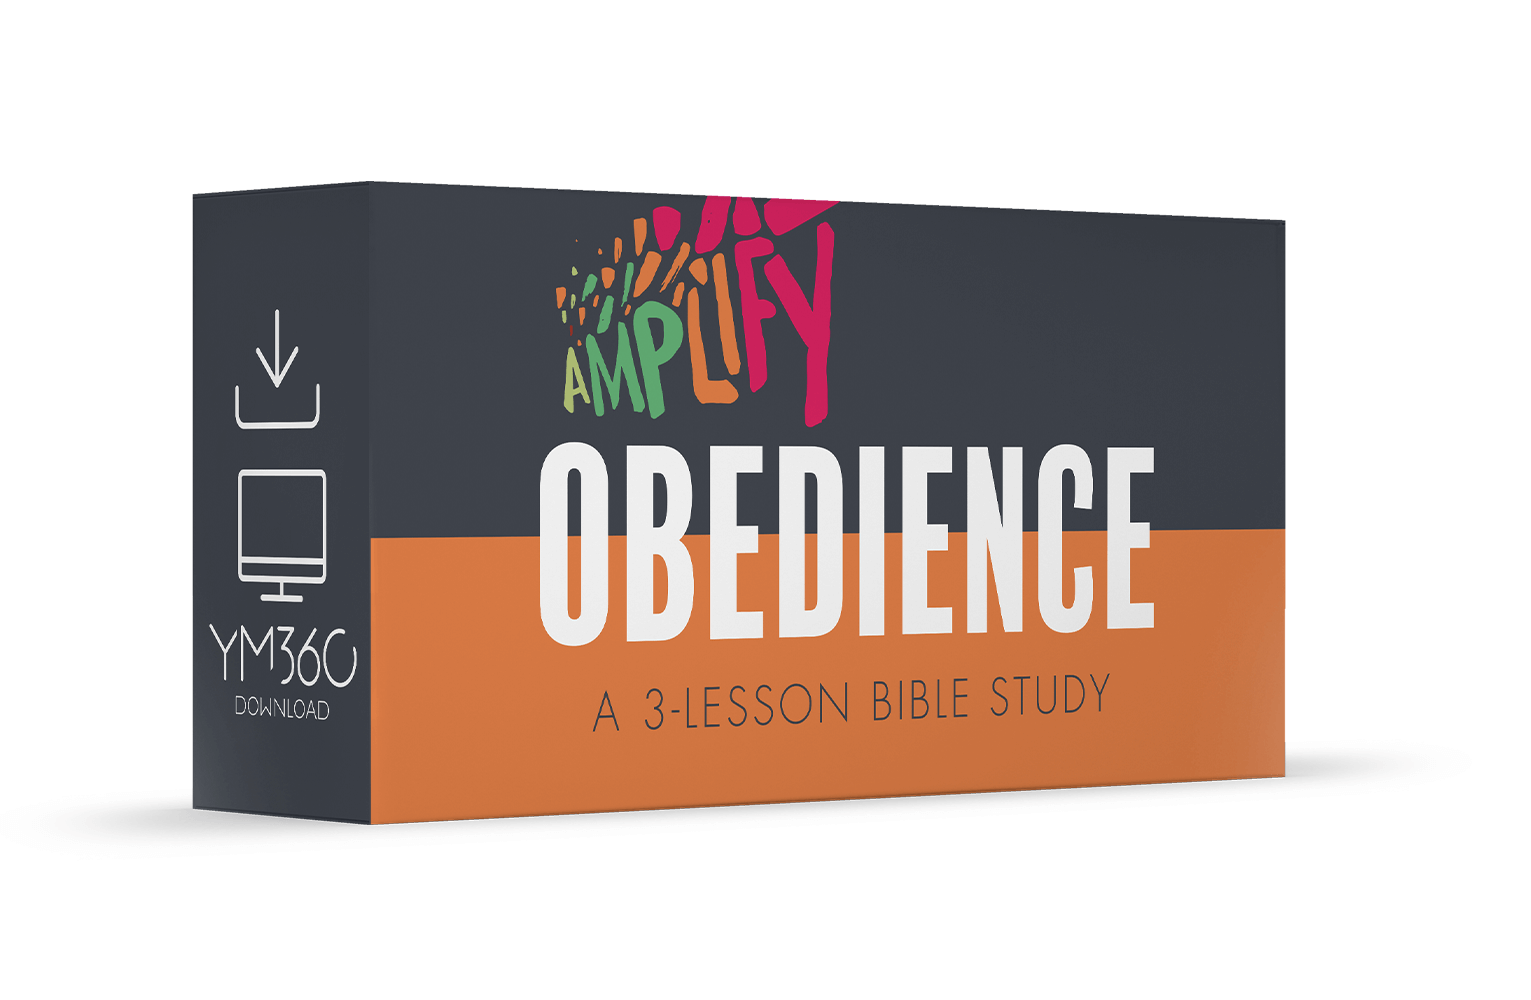 Obedience: A 3-Lesson Bible Study